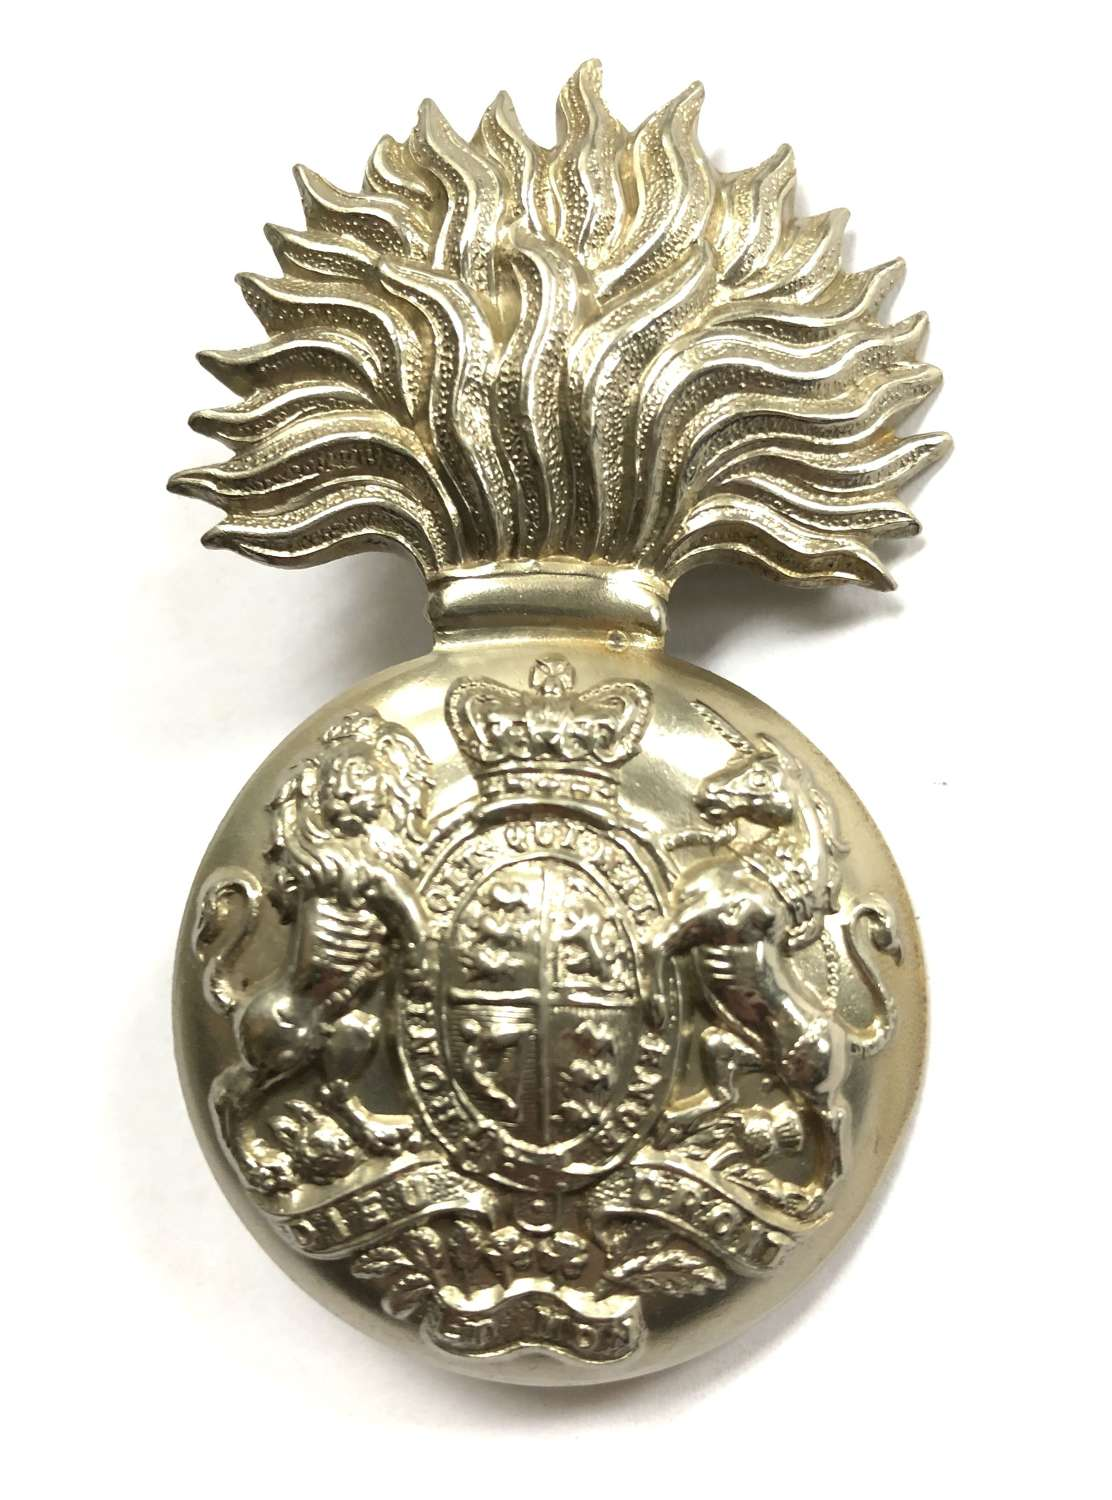 Royal Scots Fusiliers Victorian Volunteer Bn OR's glengarry badge